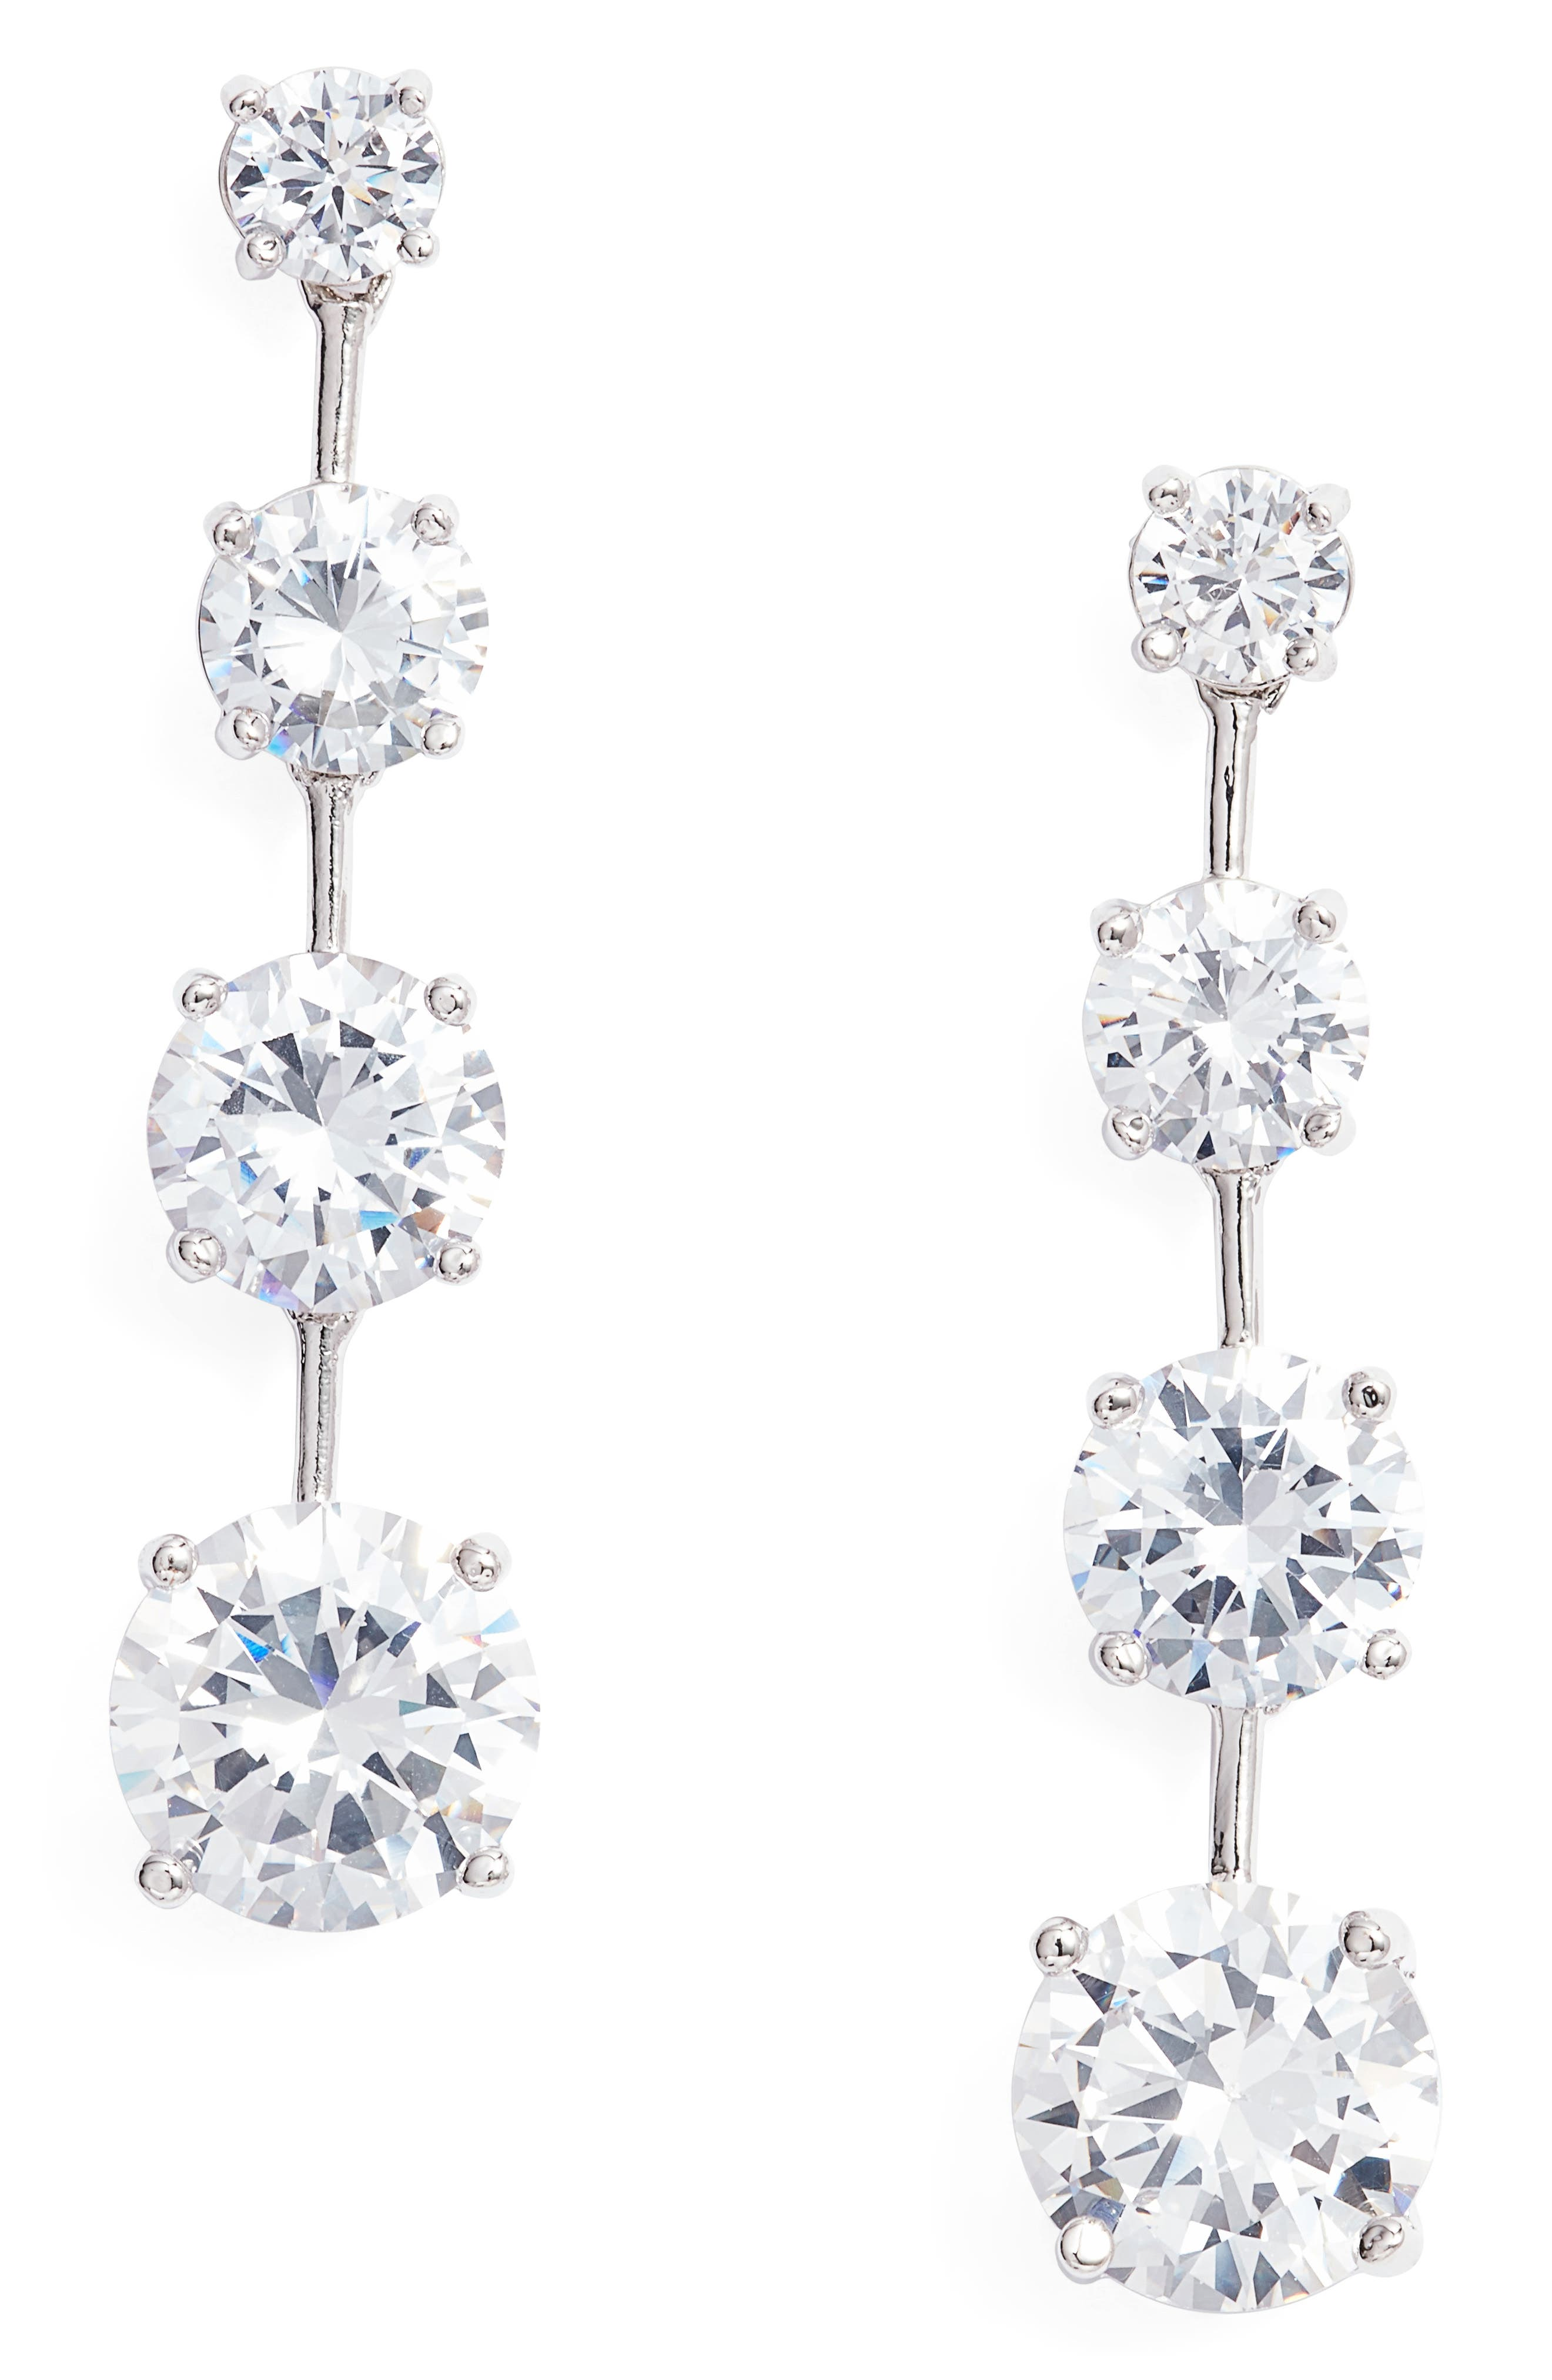 Graduated Cubic Zirconia Linear Drop Earrings,                             Main thumbnail 1, color,                             Silver/ White Cz